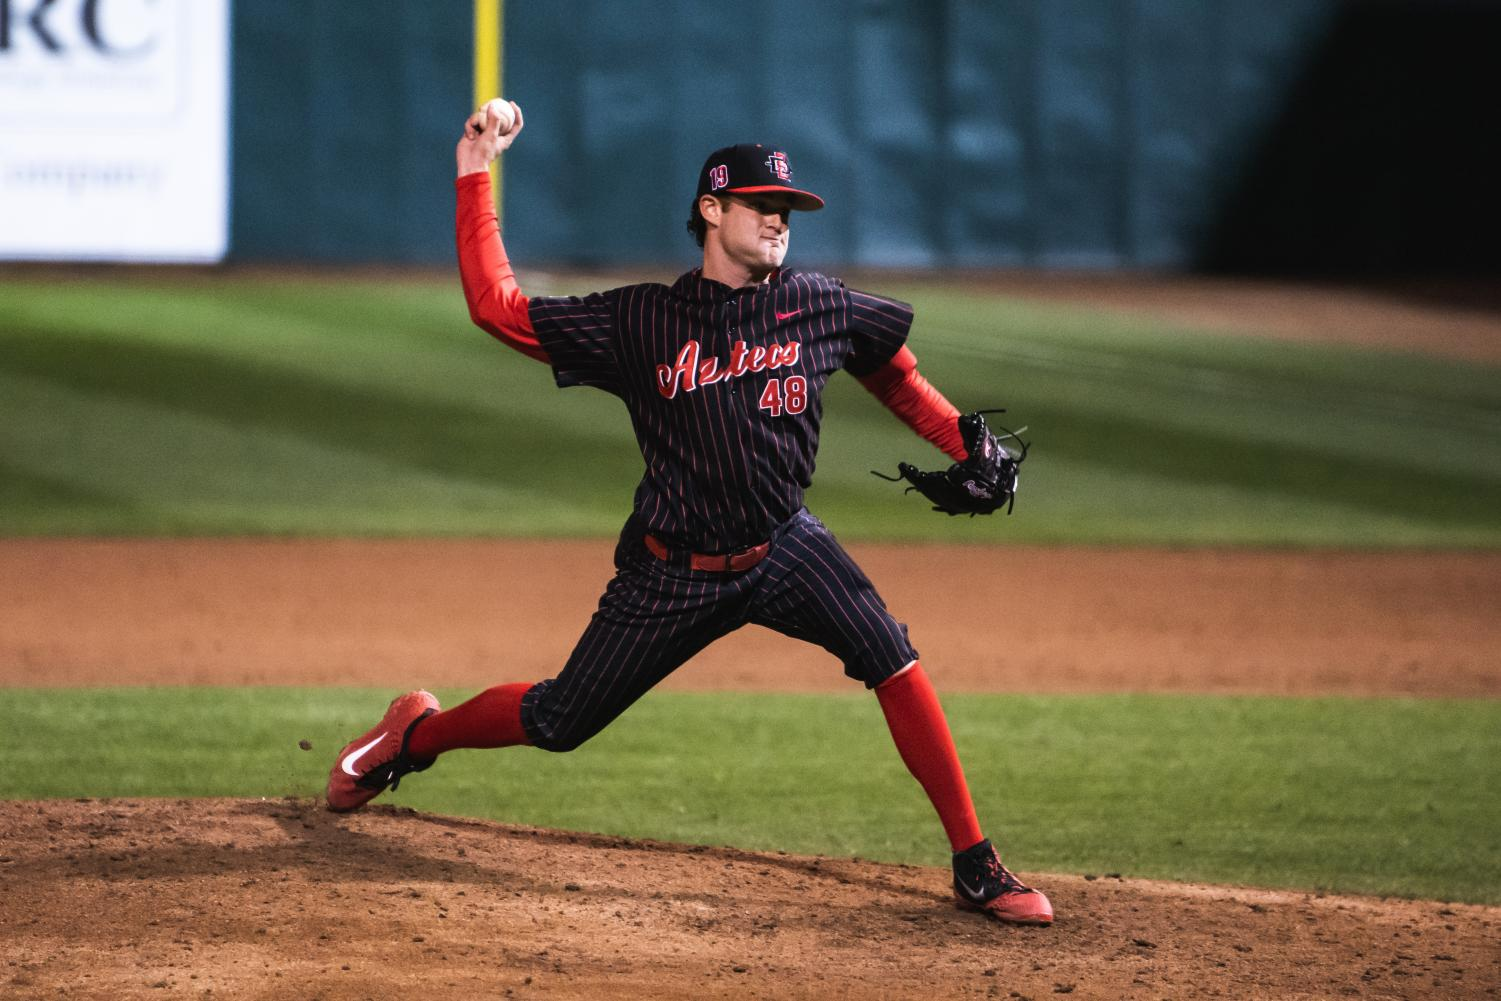 Senior pitcher Justin Goossen-Brown pitches during the Aztecs' 8-4 victory over San Francisco on Feb. 15 at Tony Gwynn Stadium.